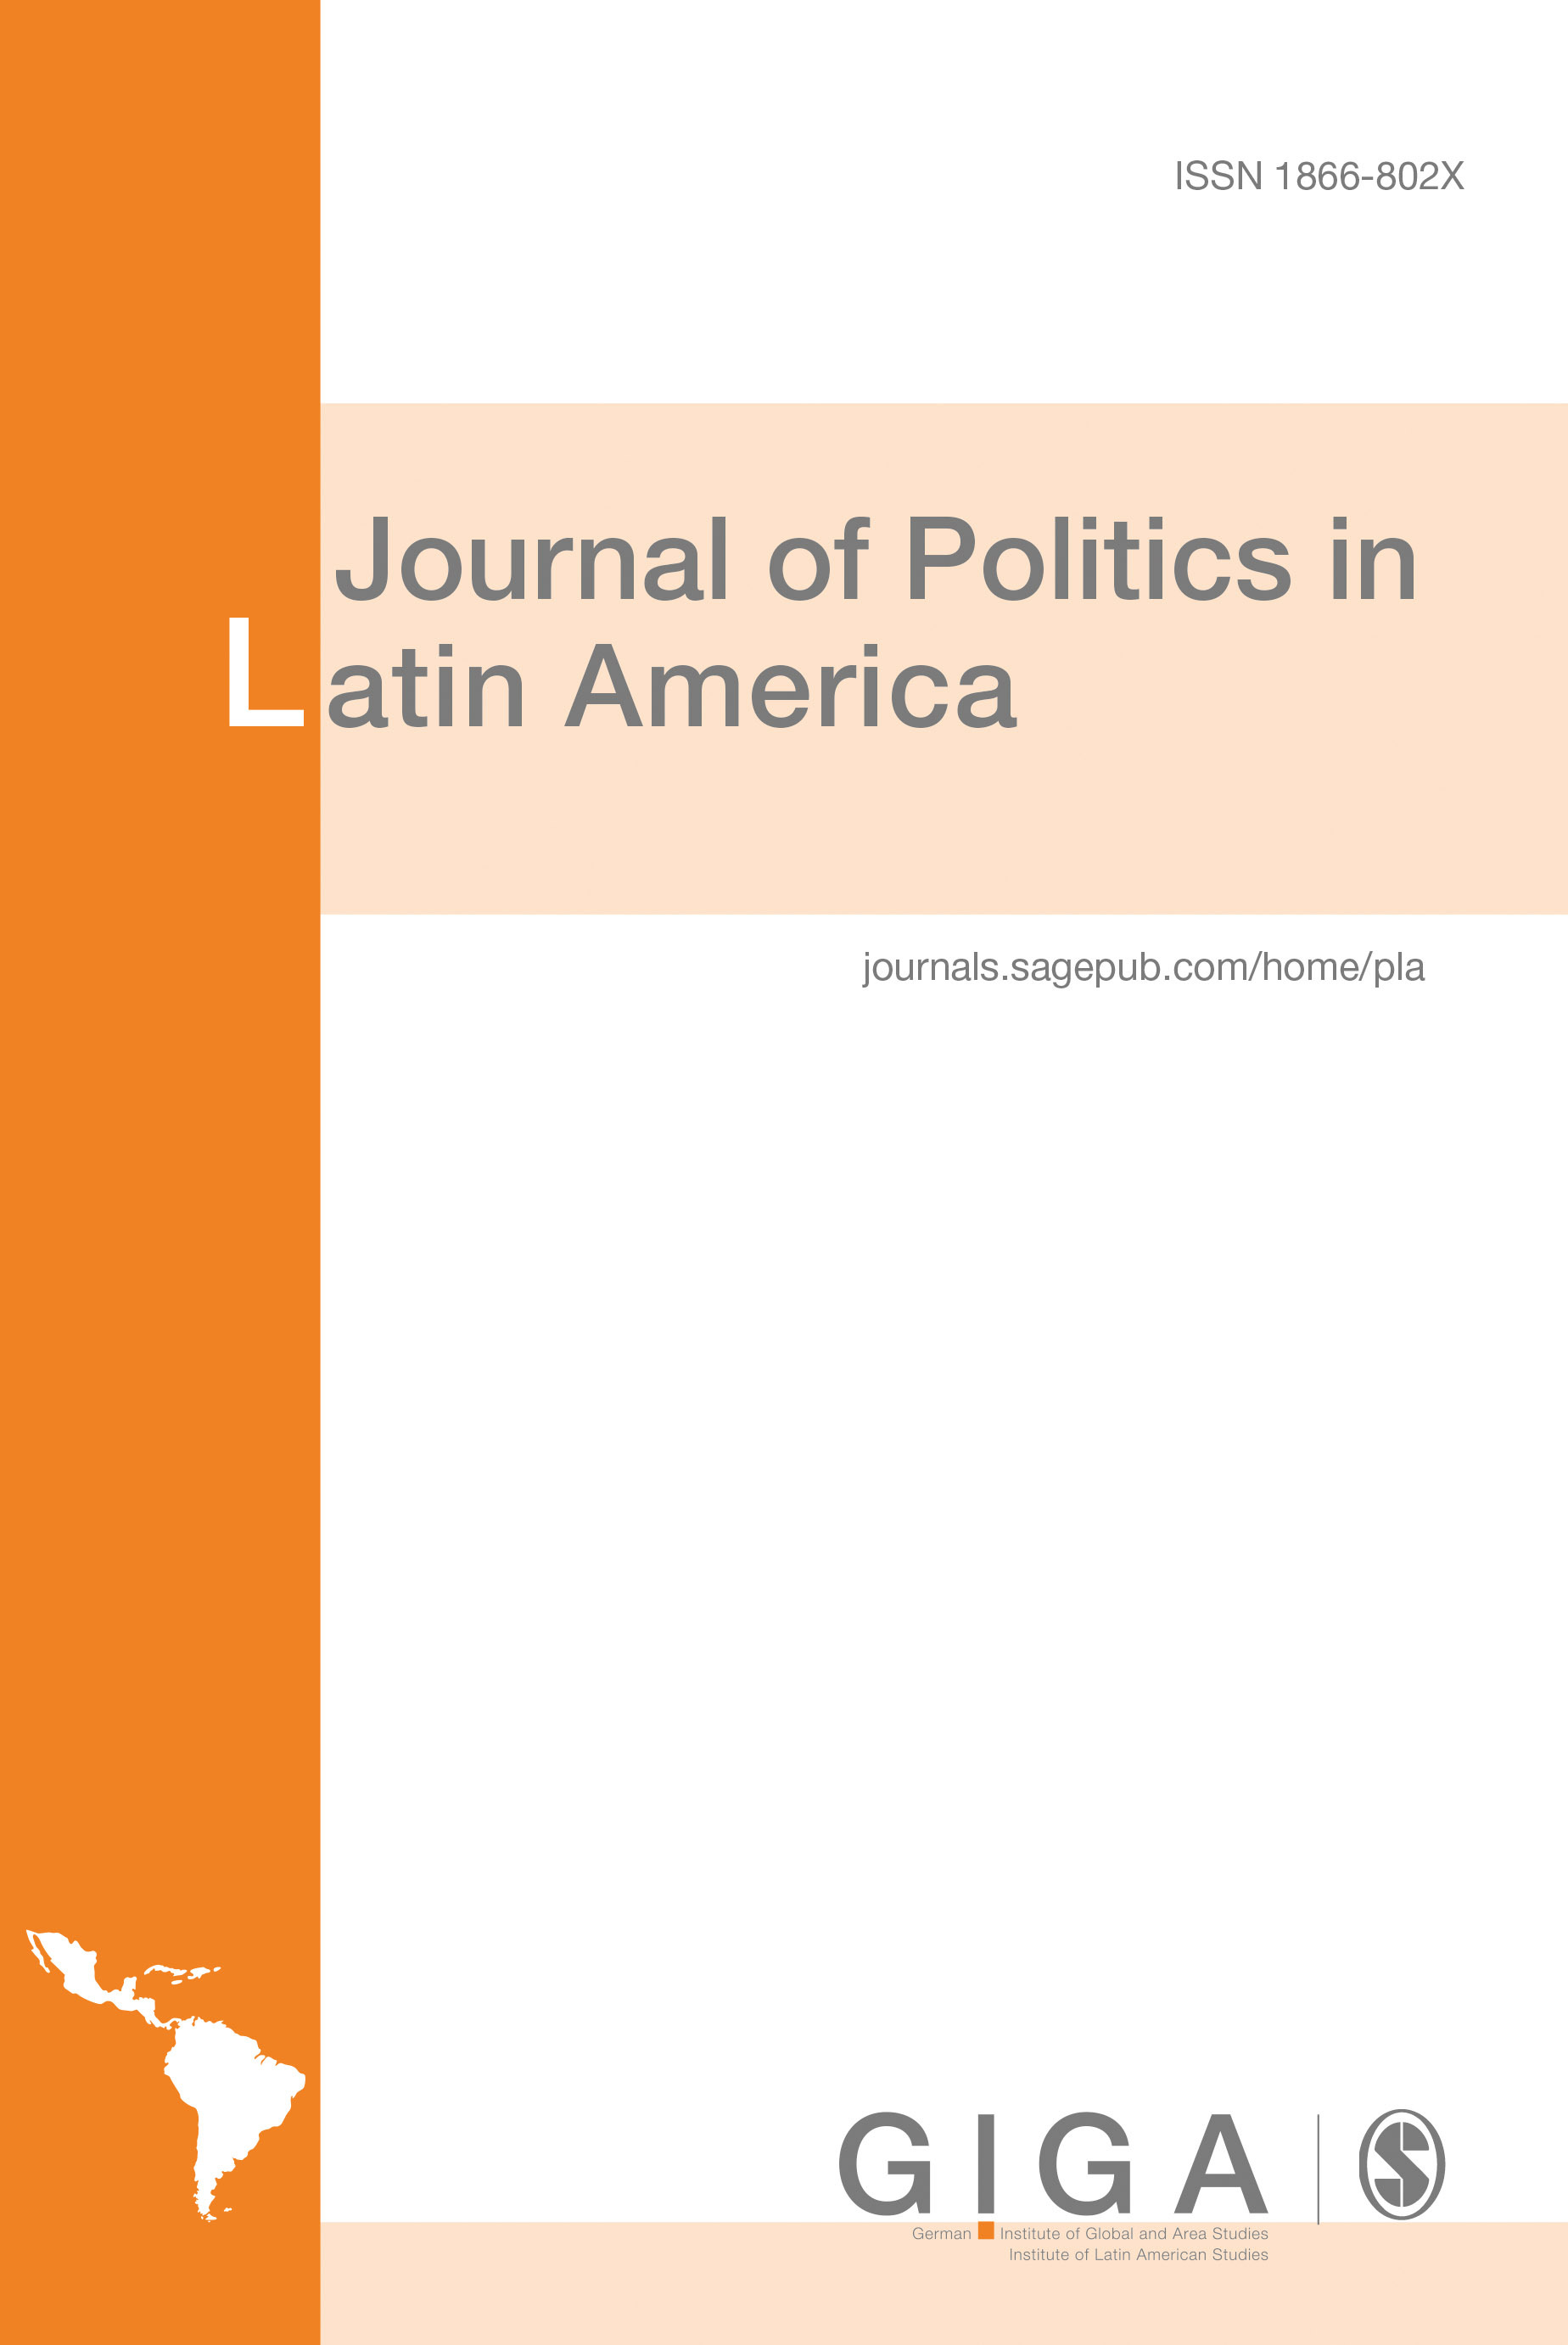 Journal of Politics in Latin America